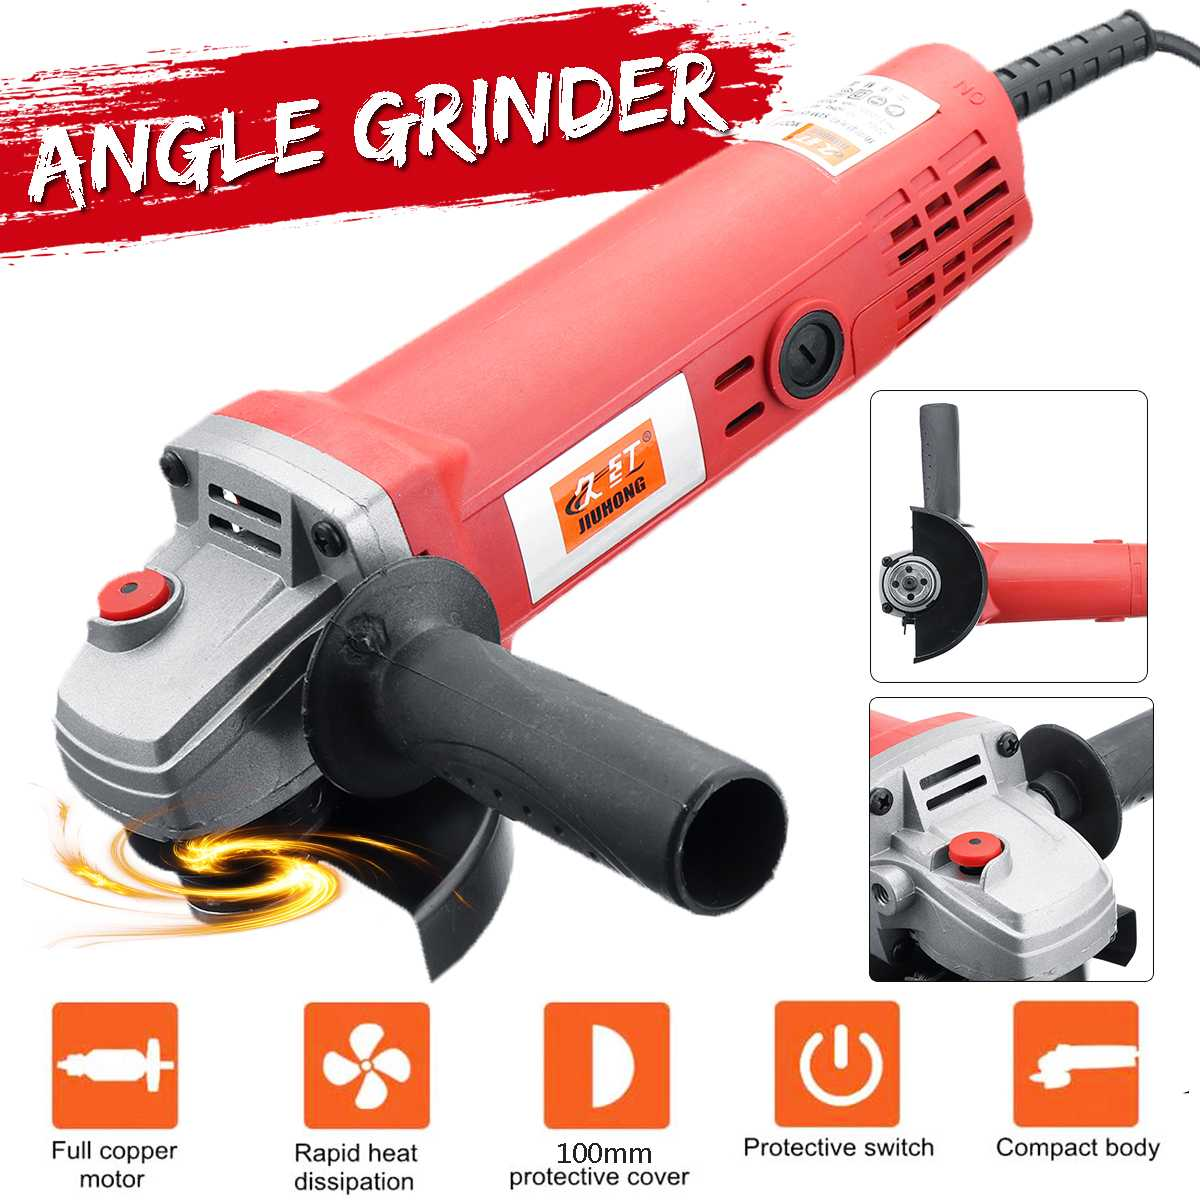 220V EU Plug Electric Angle Grinder 1350/980W 115/100mm Adjustable Speed Metal Cutting Tool 360 Rotation Adjustable Anti-slip220V EU Plug Electric Angle Grinder 1350/980W 115/100mm Adjustable Speed Metal Cutting Tool 360 Rotation Adjustable Anti-slip